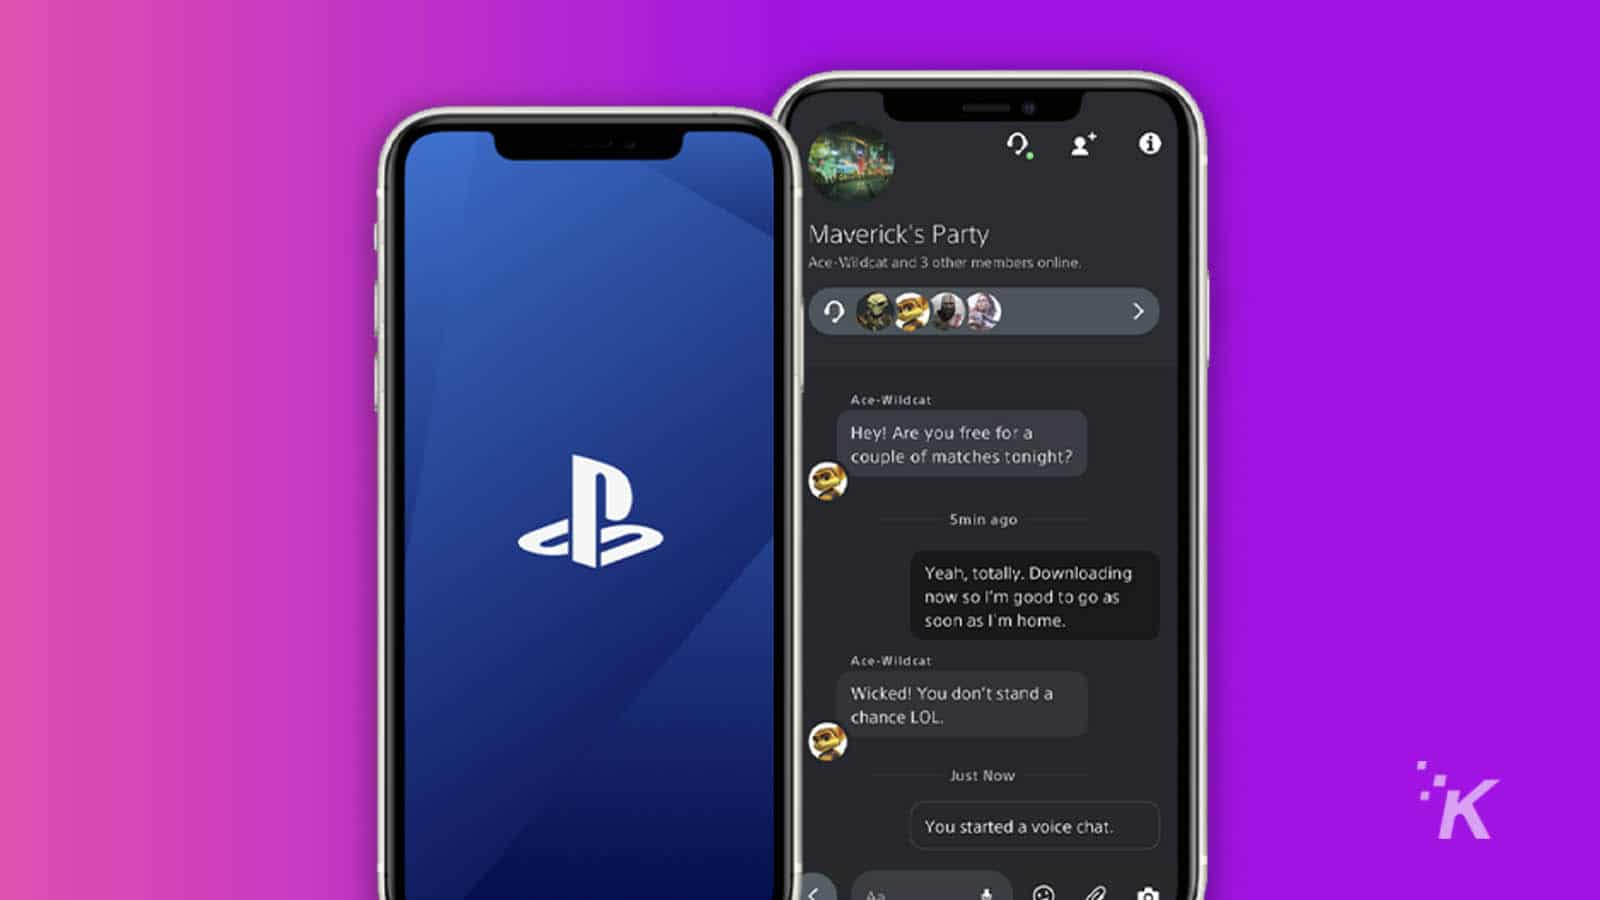 new update to playstation app